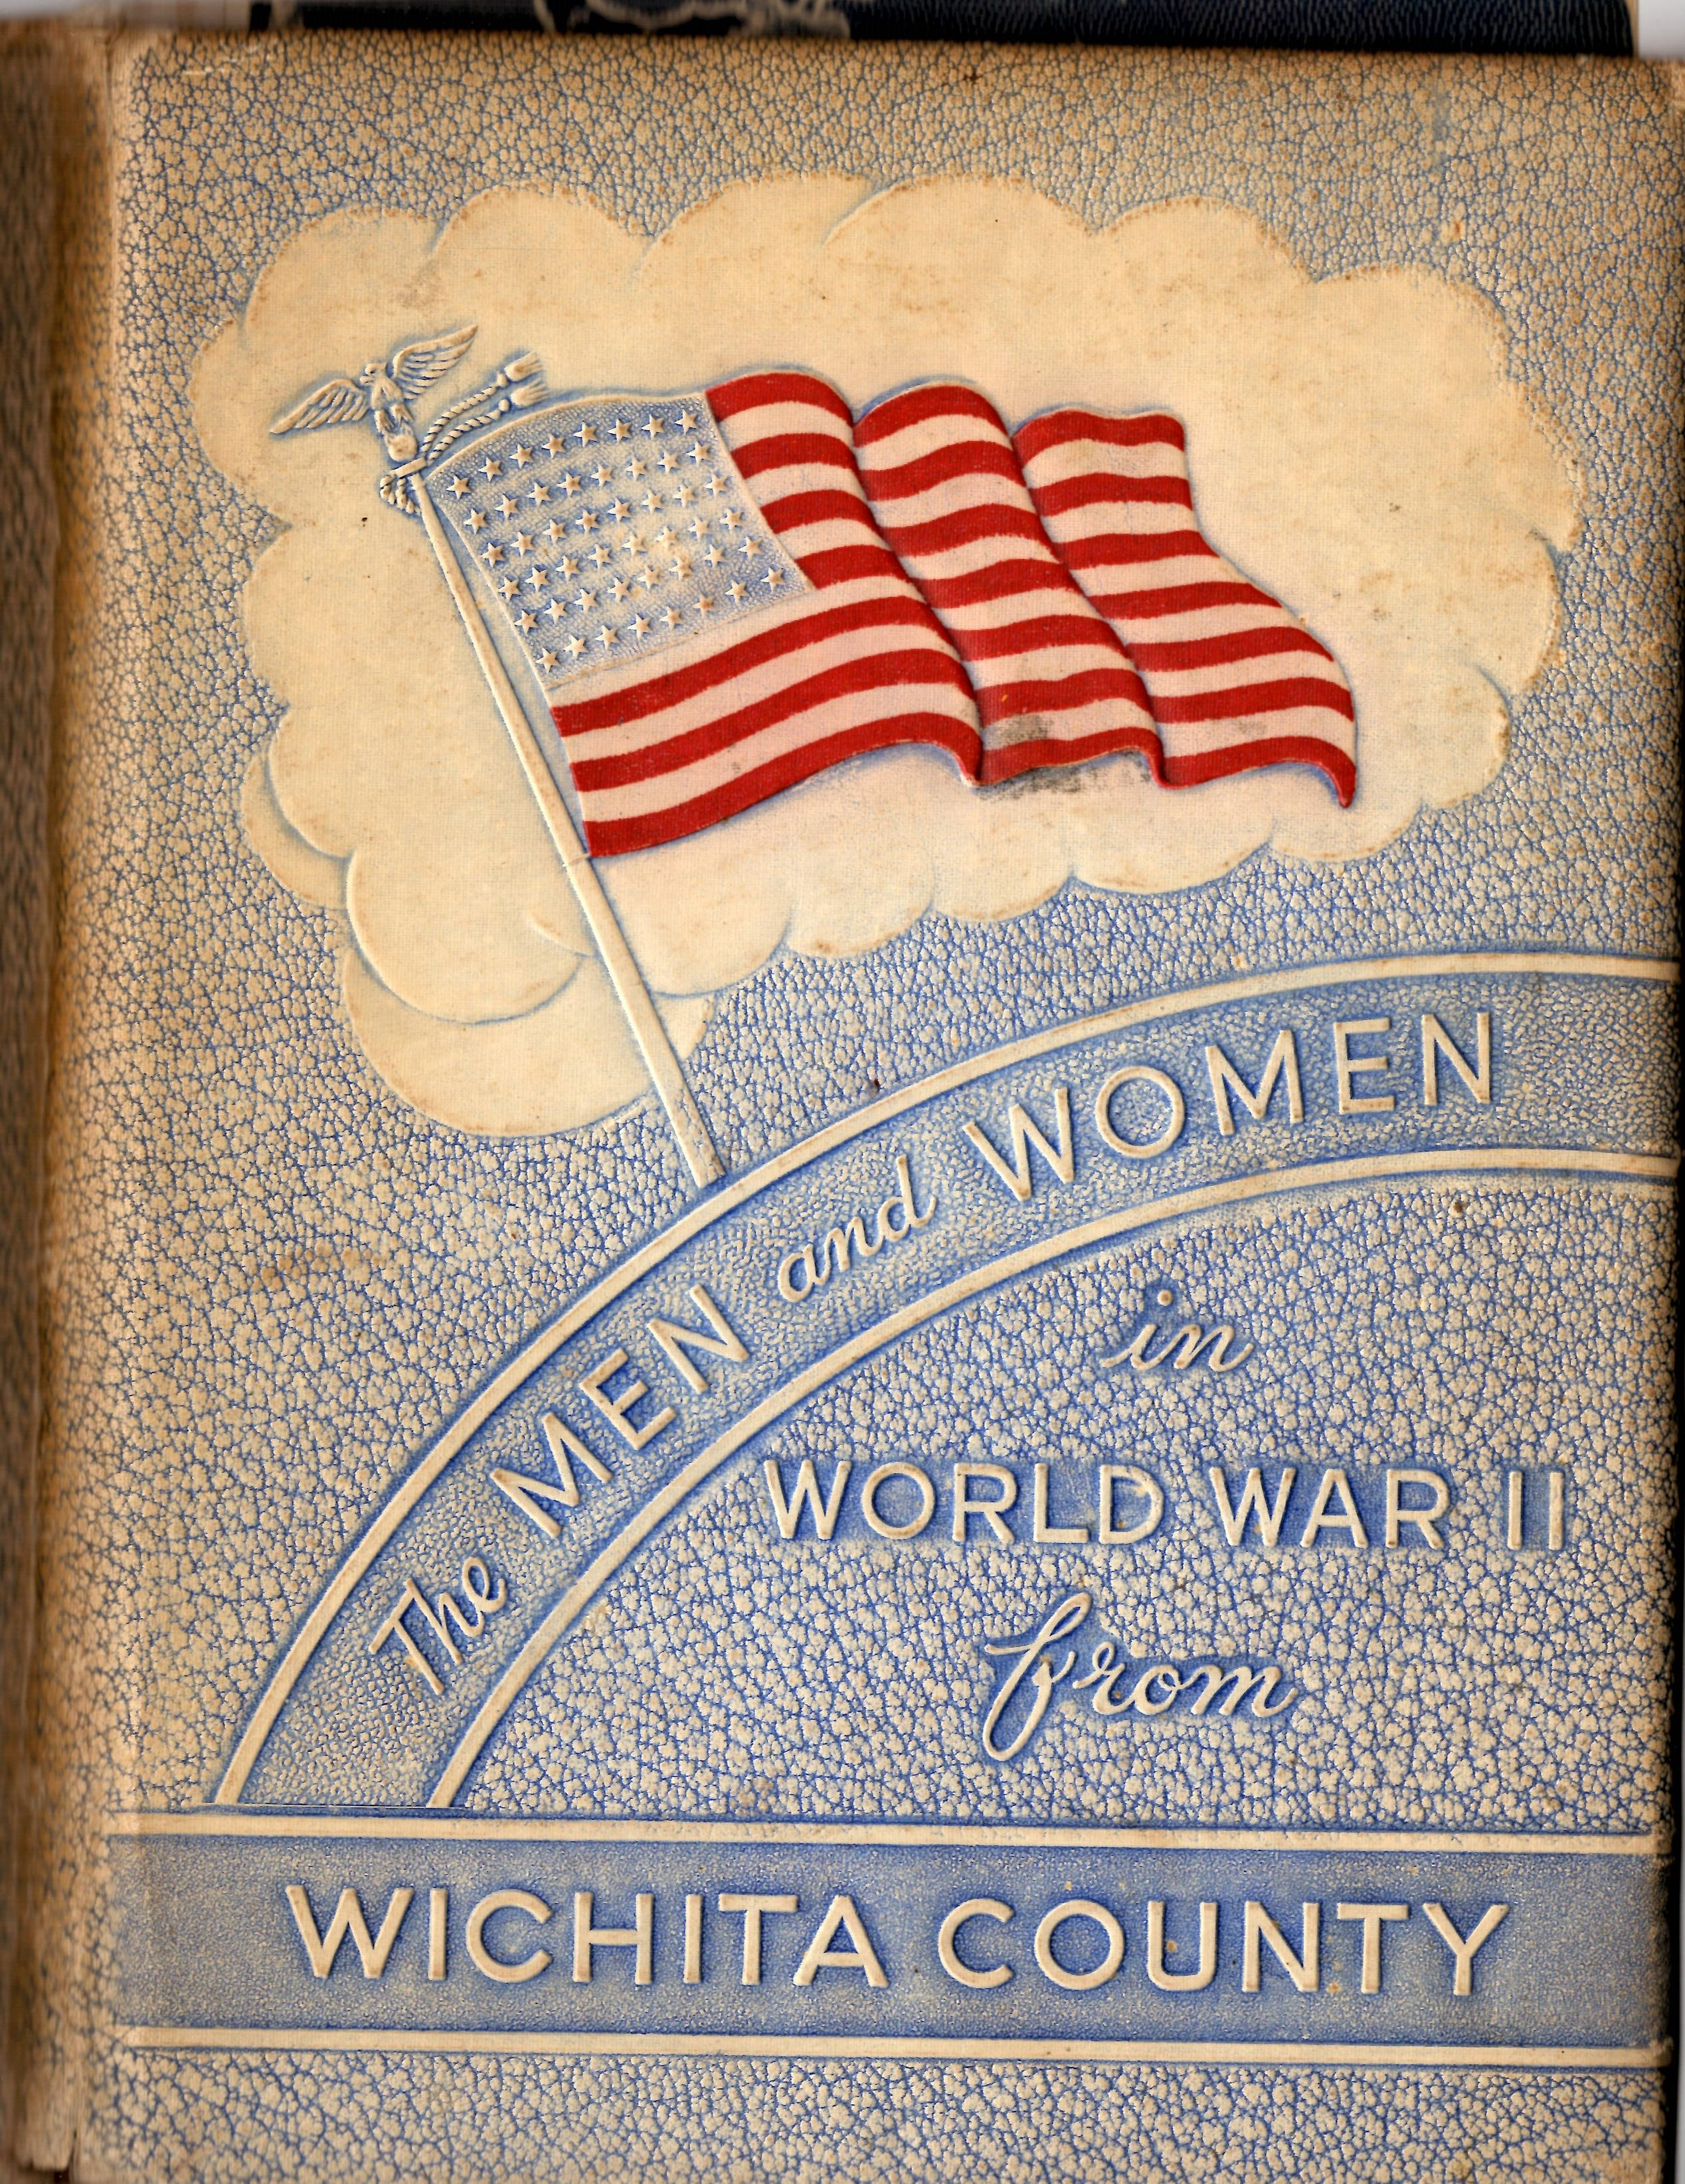 Men and women in the Armed Forces from Wichita County Texas